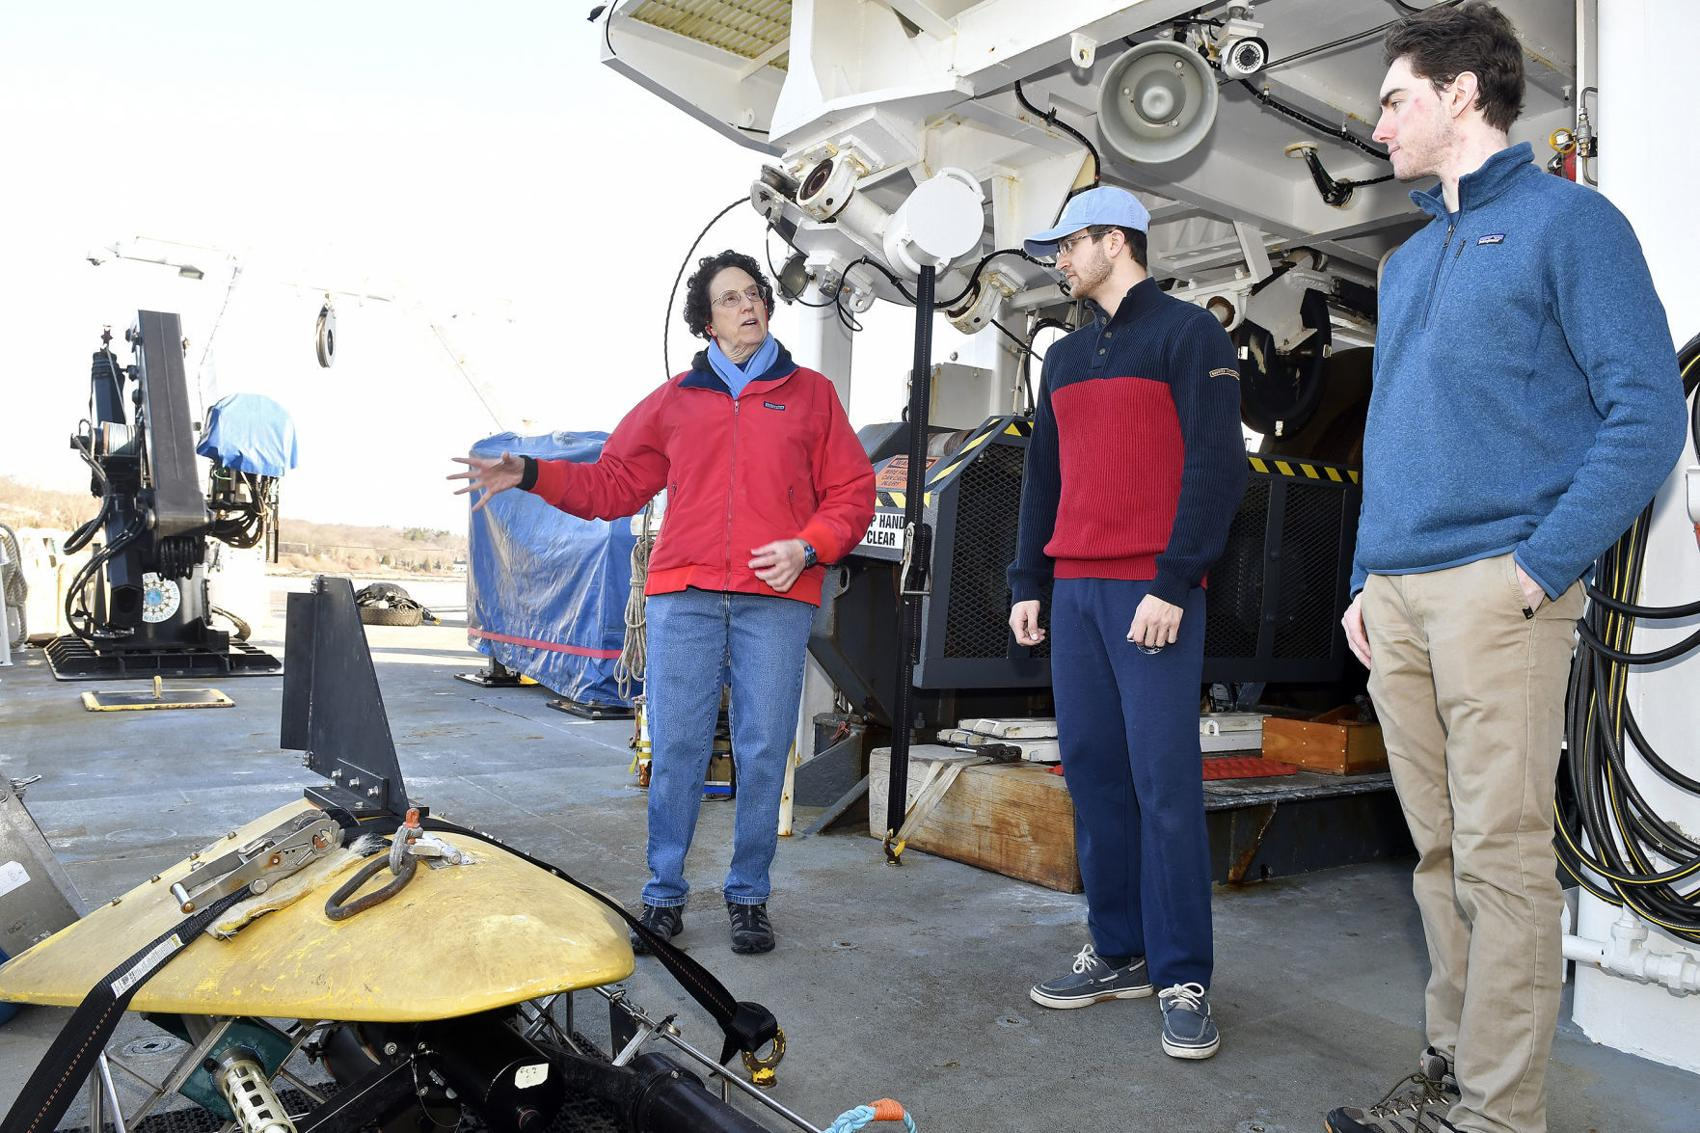 Karen Wishner, left, an oceanography professor at the University of Rhode Island, talks about the video plankton recorder aboard the R/V Endeavor with students Ethan Koproski, center, and Michael Ricker, right, Tuesday morning. Photo by Michael Derr.